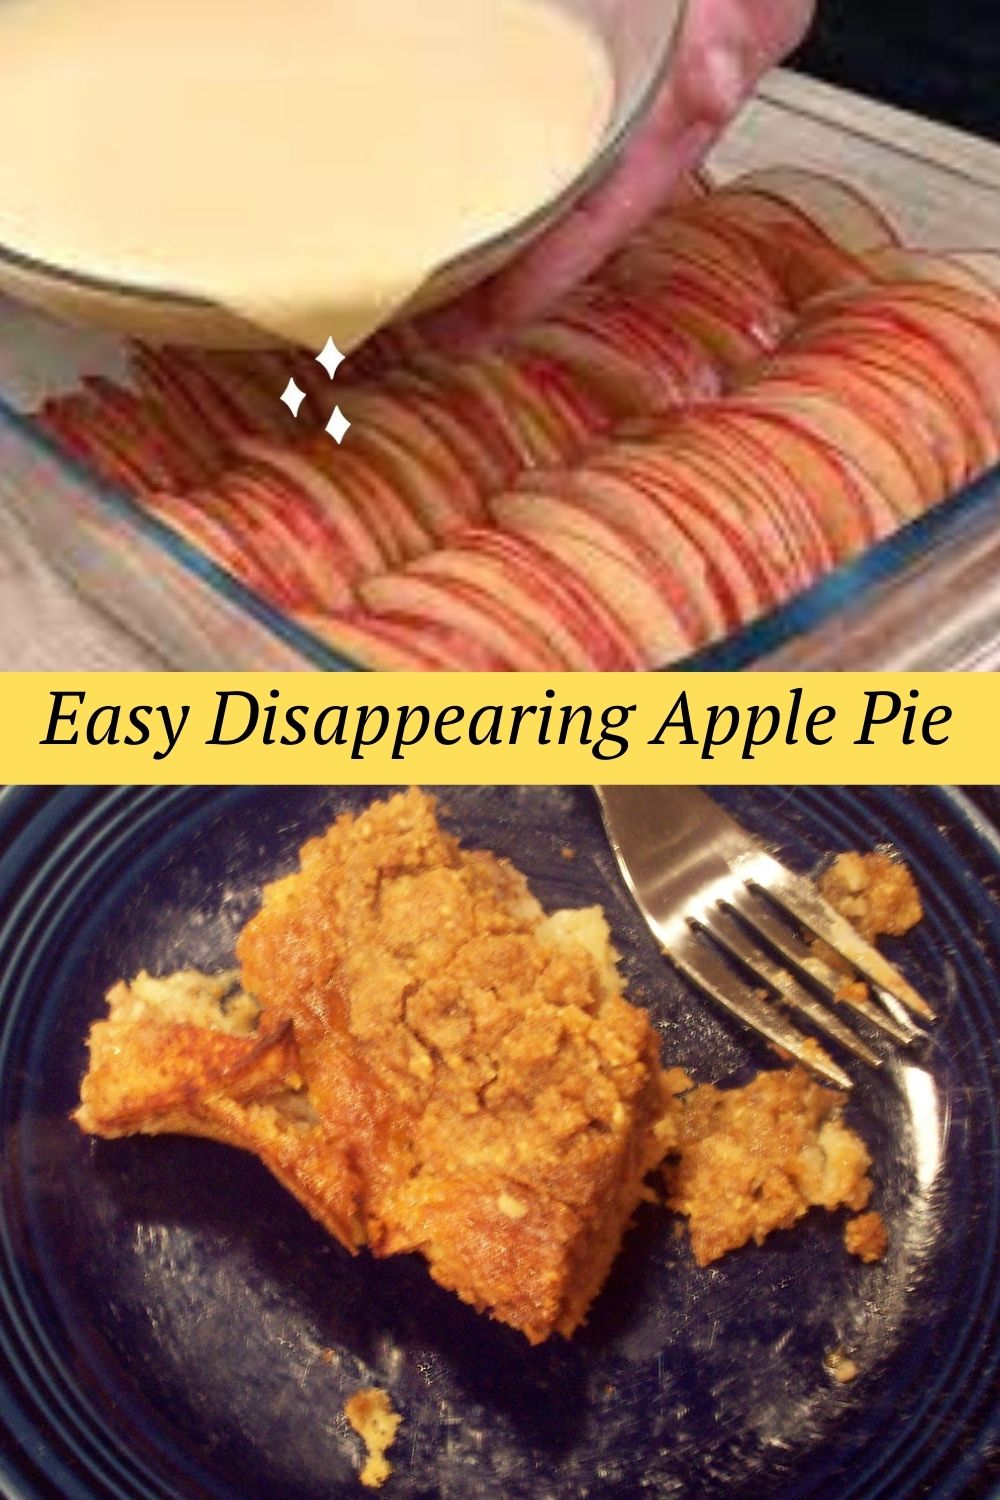 Easy Disappearing Apple Pie